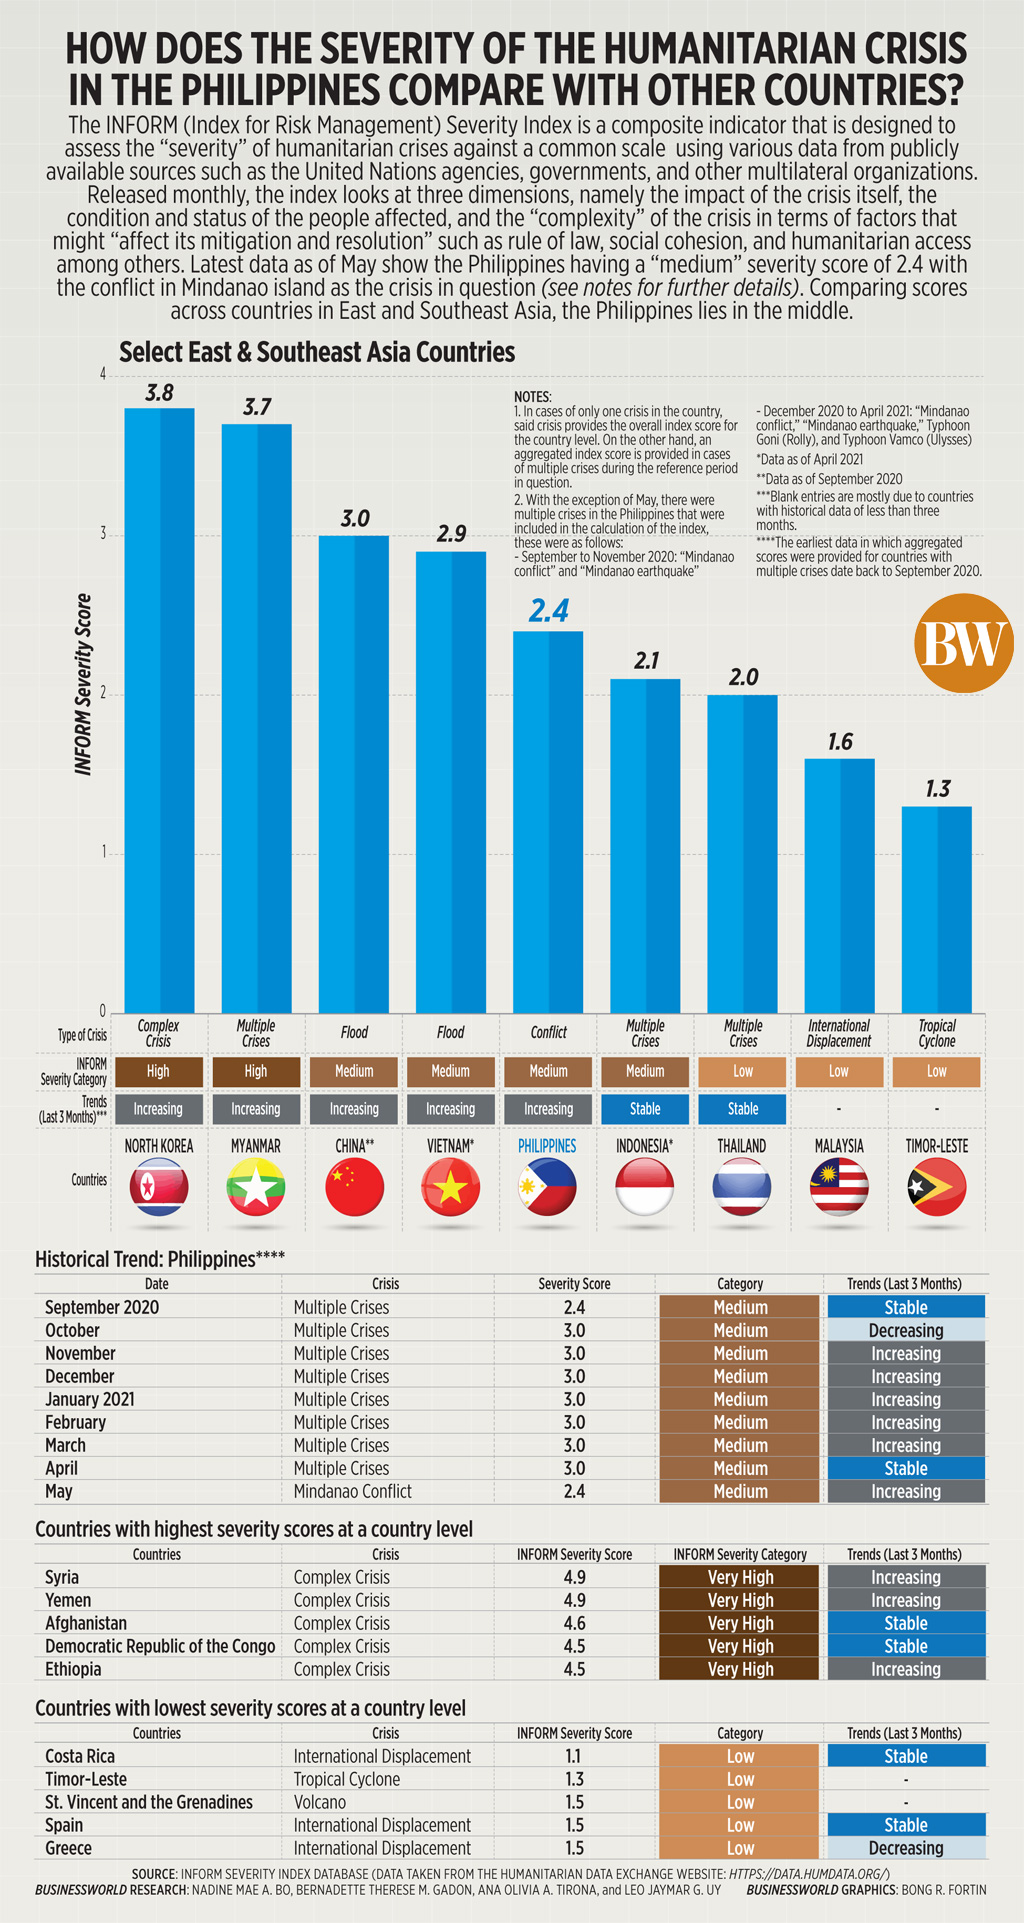 How does the severity of the humanitarian crisis in the Philippines compare with other countries?